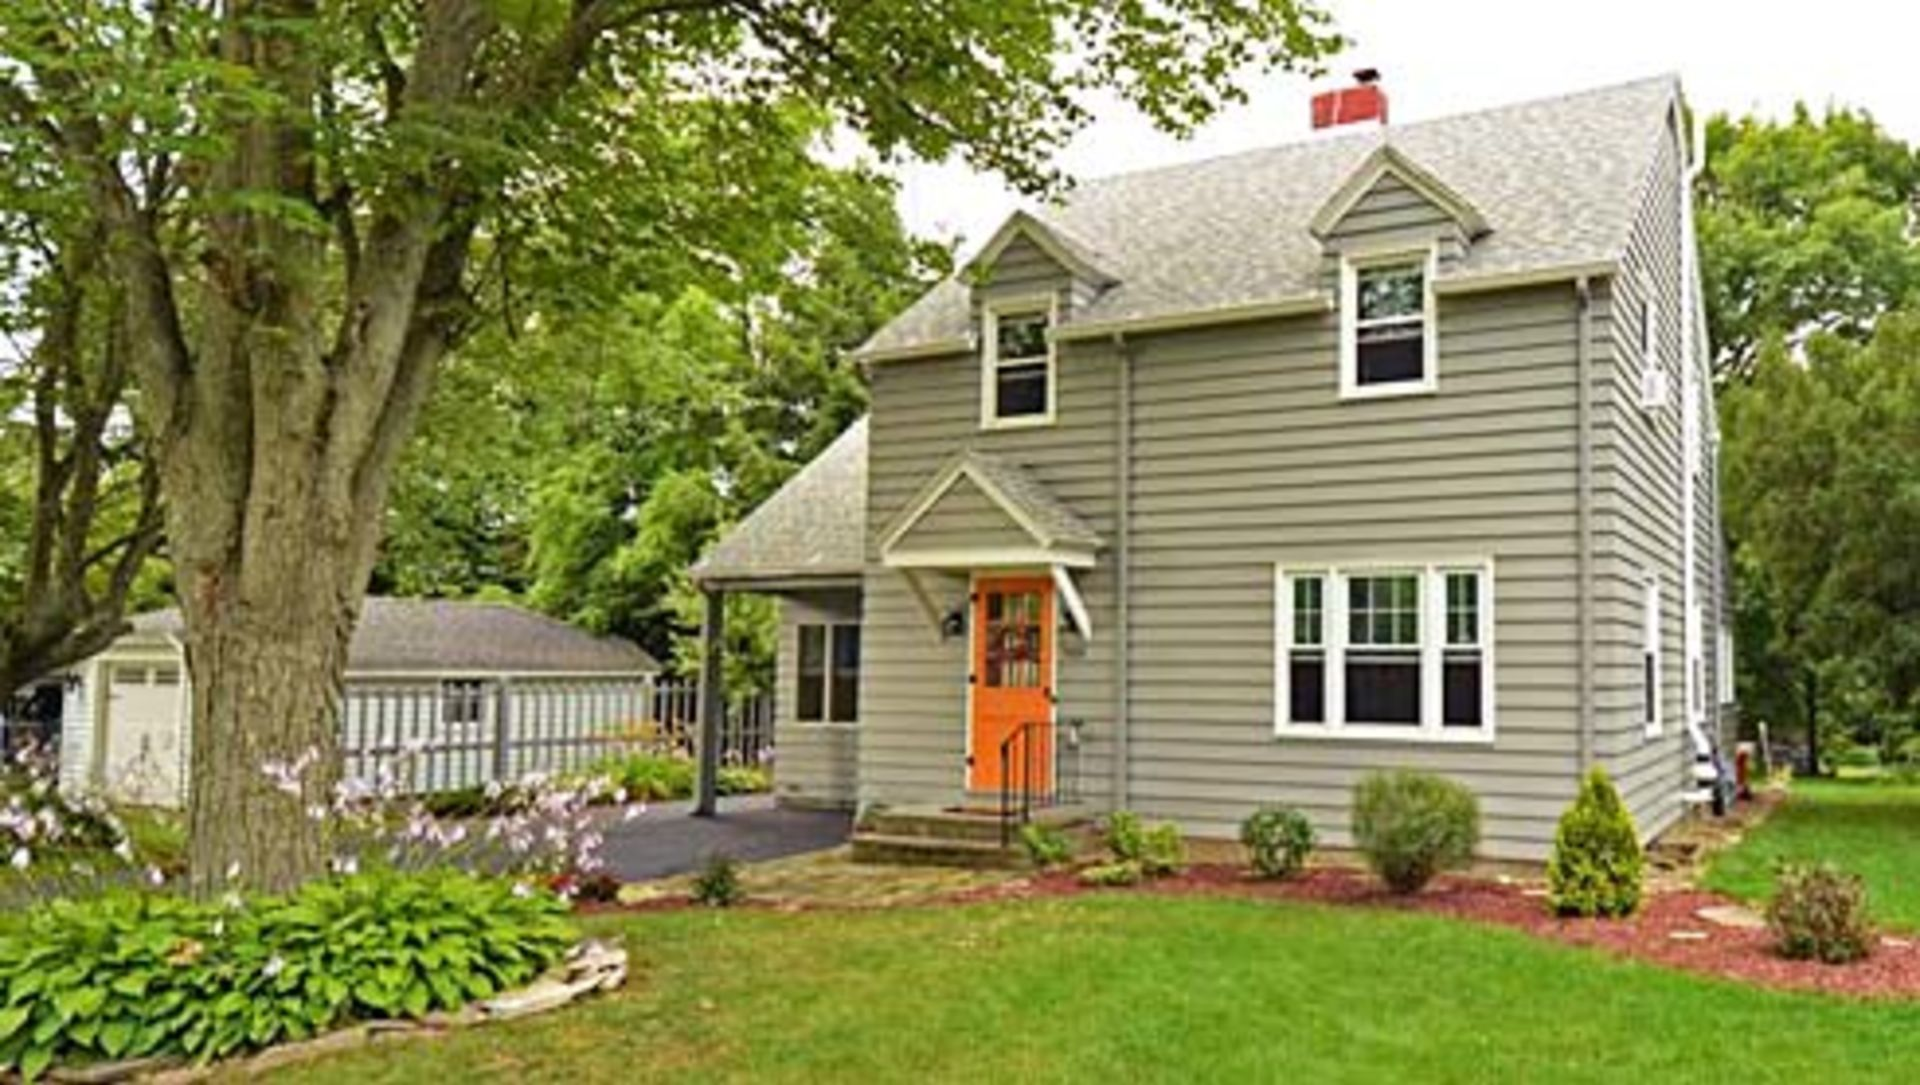 How pricing a home right in a competitive neighborhood resulted in multiple offers above asking price